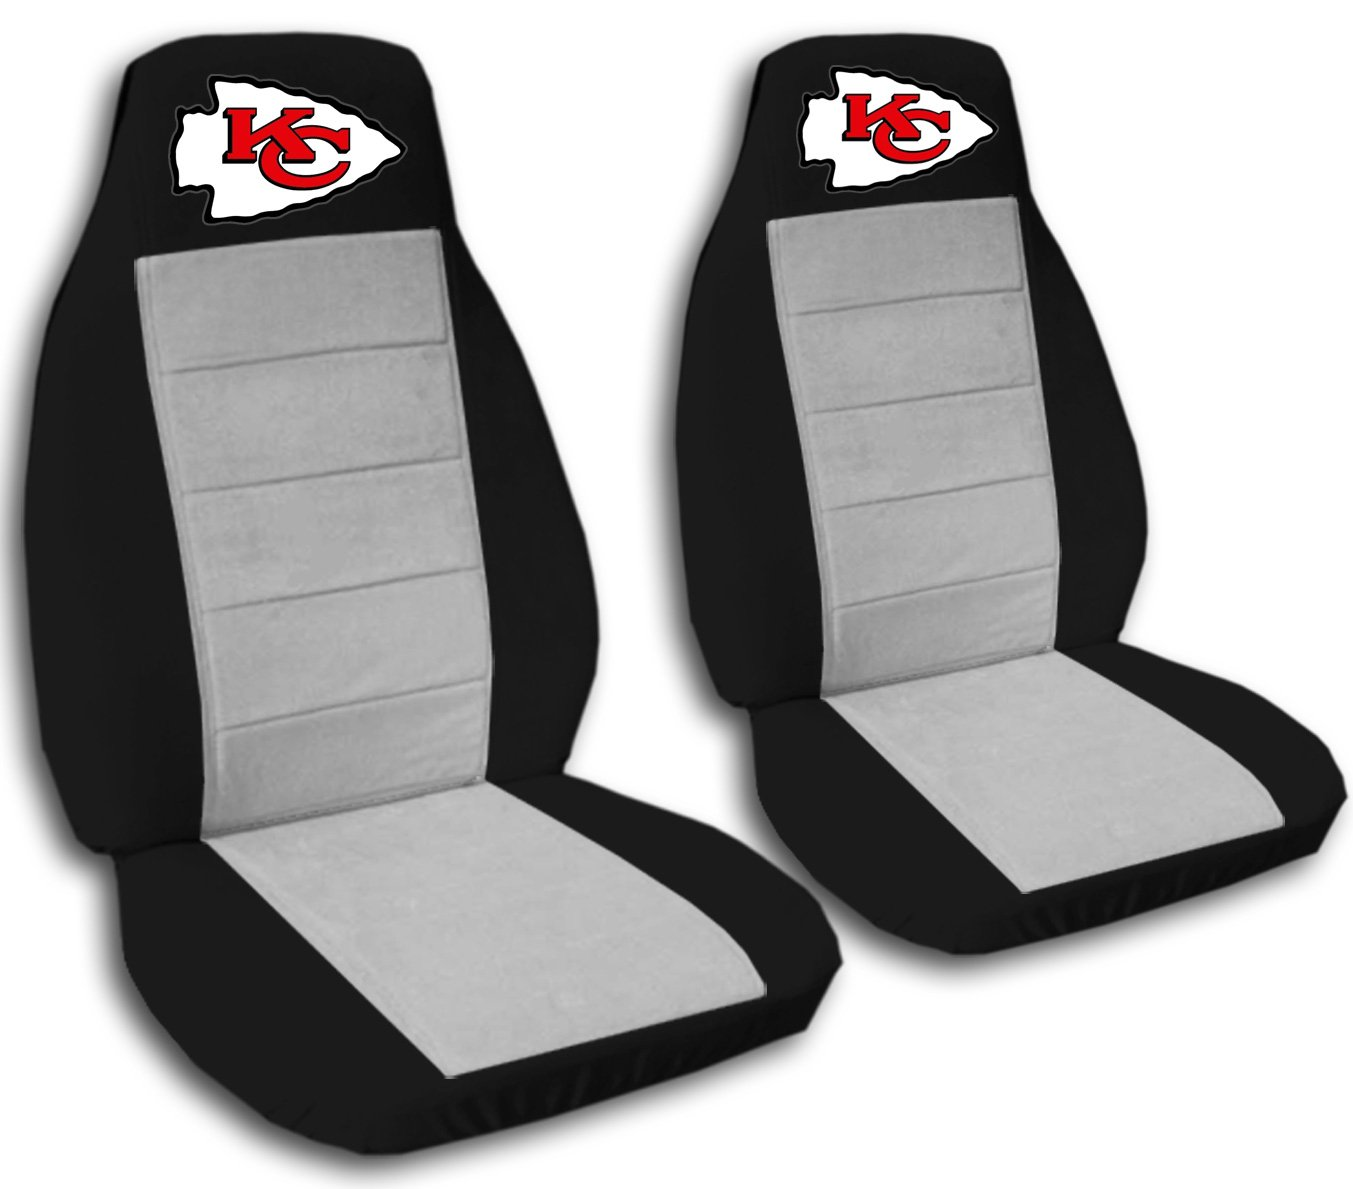 2 Black and Silver Kansas City seat covers for a 2007 to 2012 Chevrolet Silverado. Side airbag friendly.